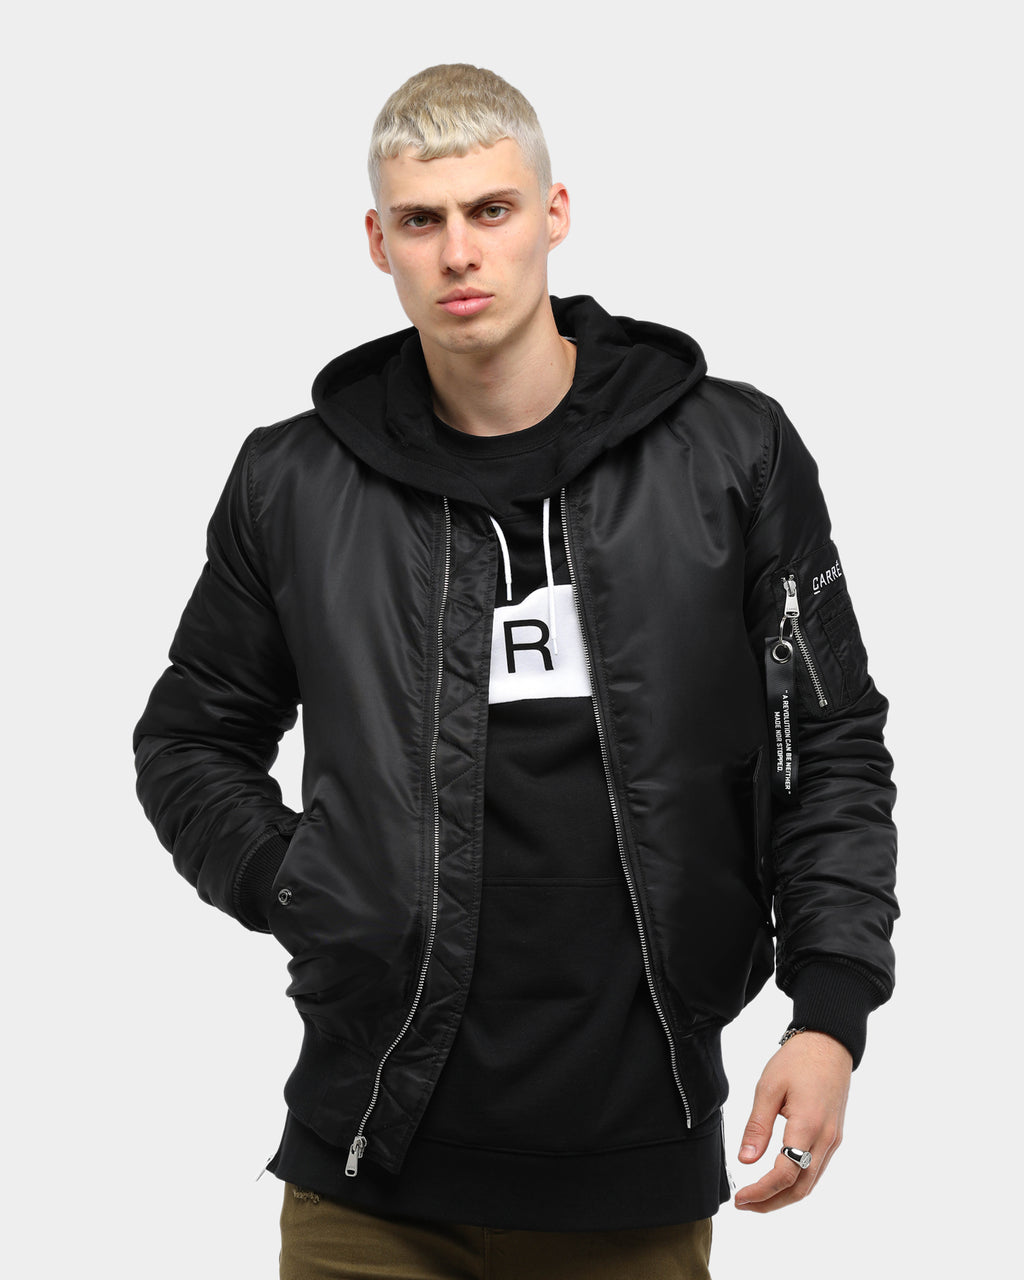 Carré C-47 Bomber 2.0 Jacket Black